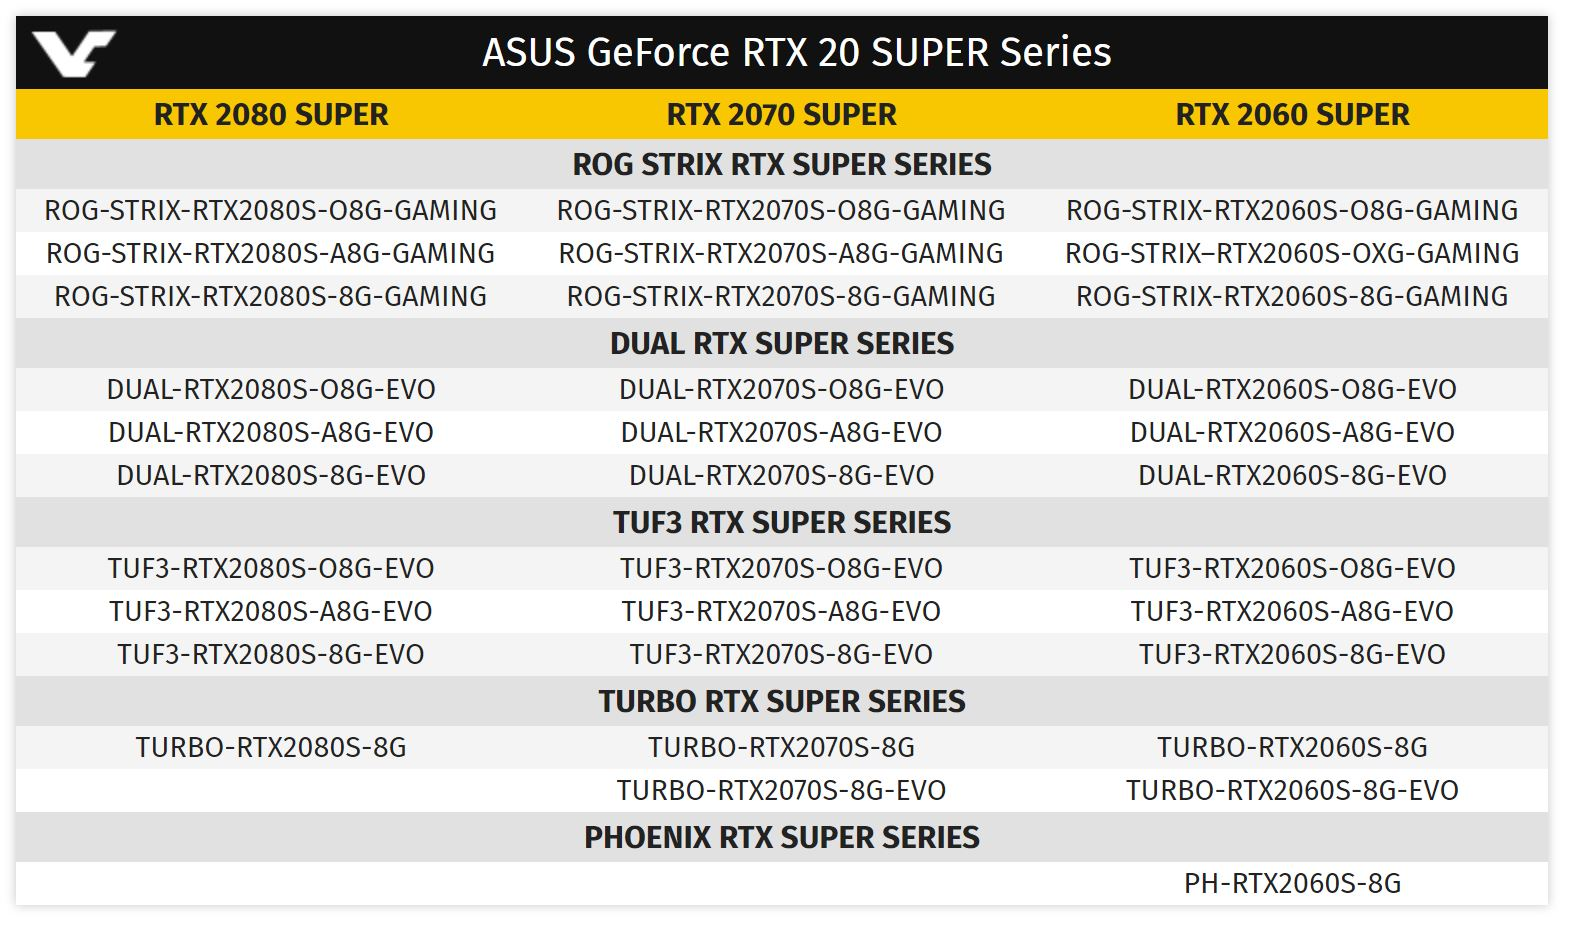 ASUS has an incredible 33 x GeForce RTX SUPER cards coming